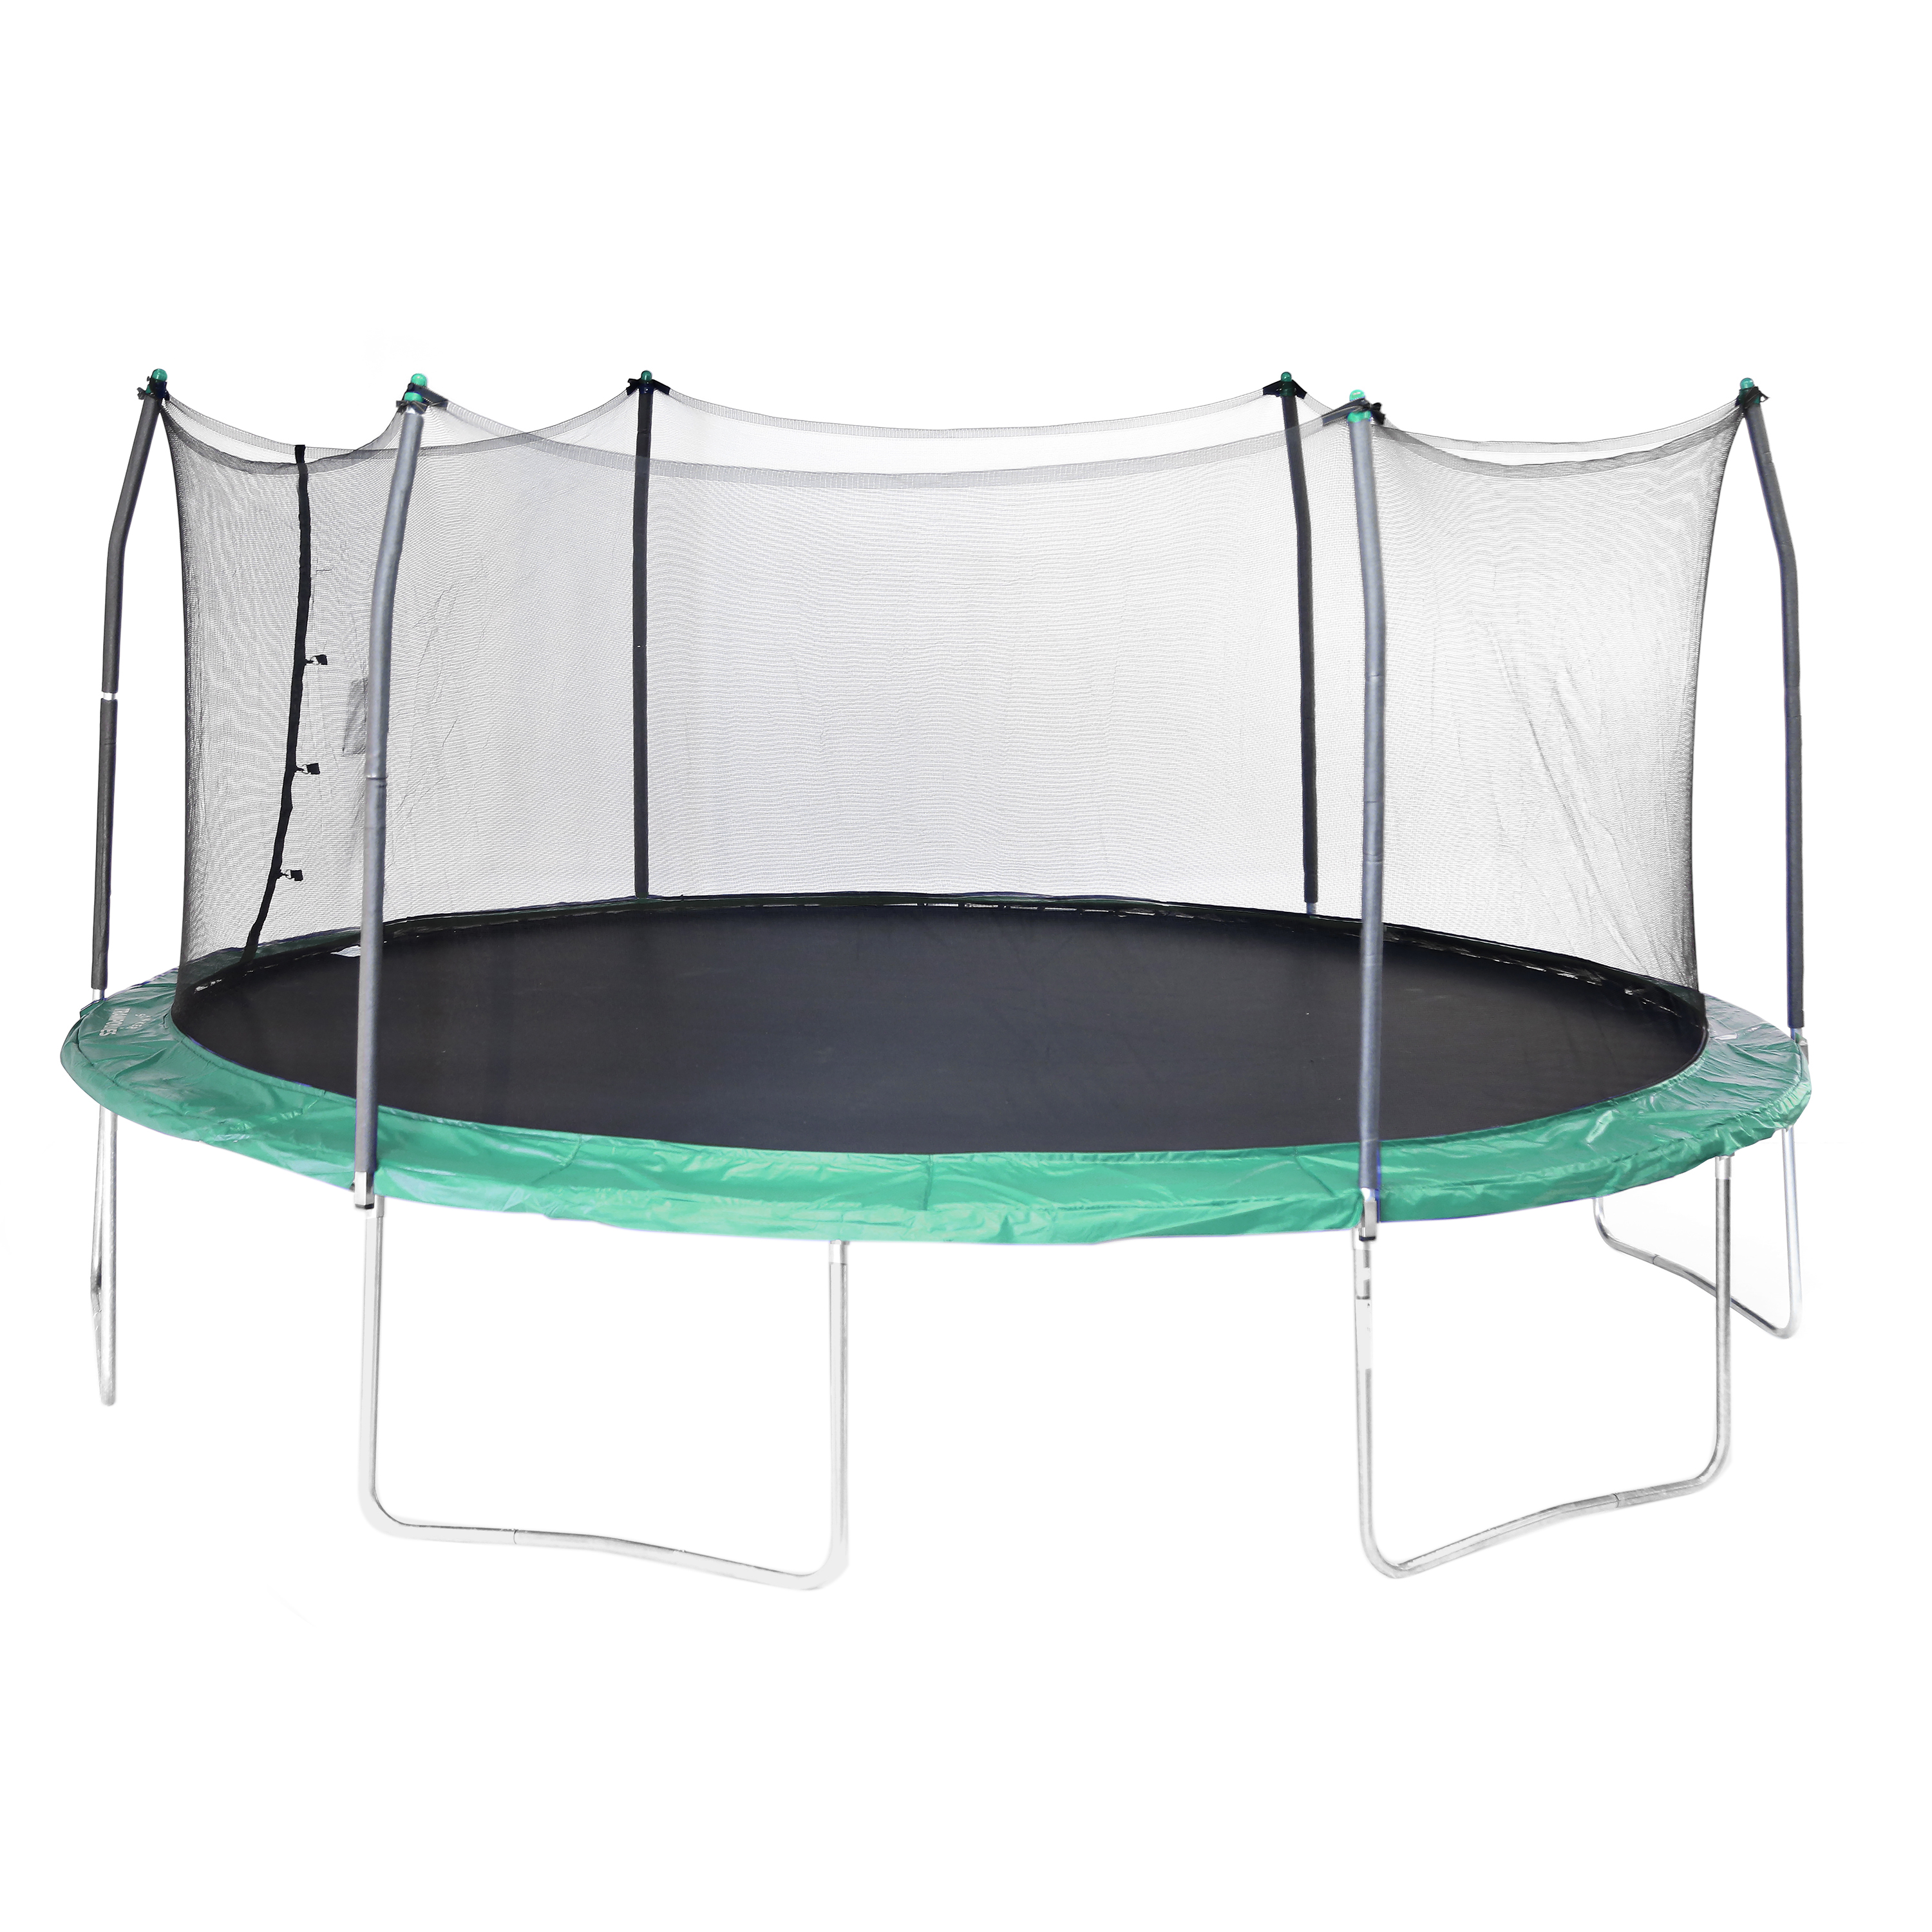 Skywalker Trampolines Oval 17-Foot Trampoline, with Enclosure, Green (Box 1 of 2)